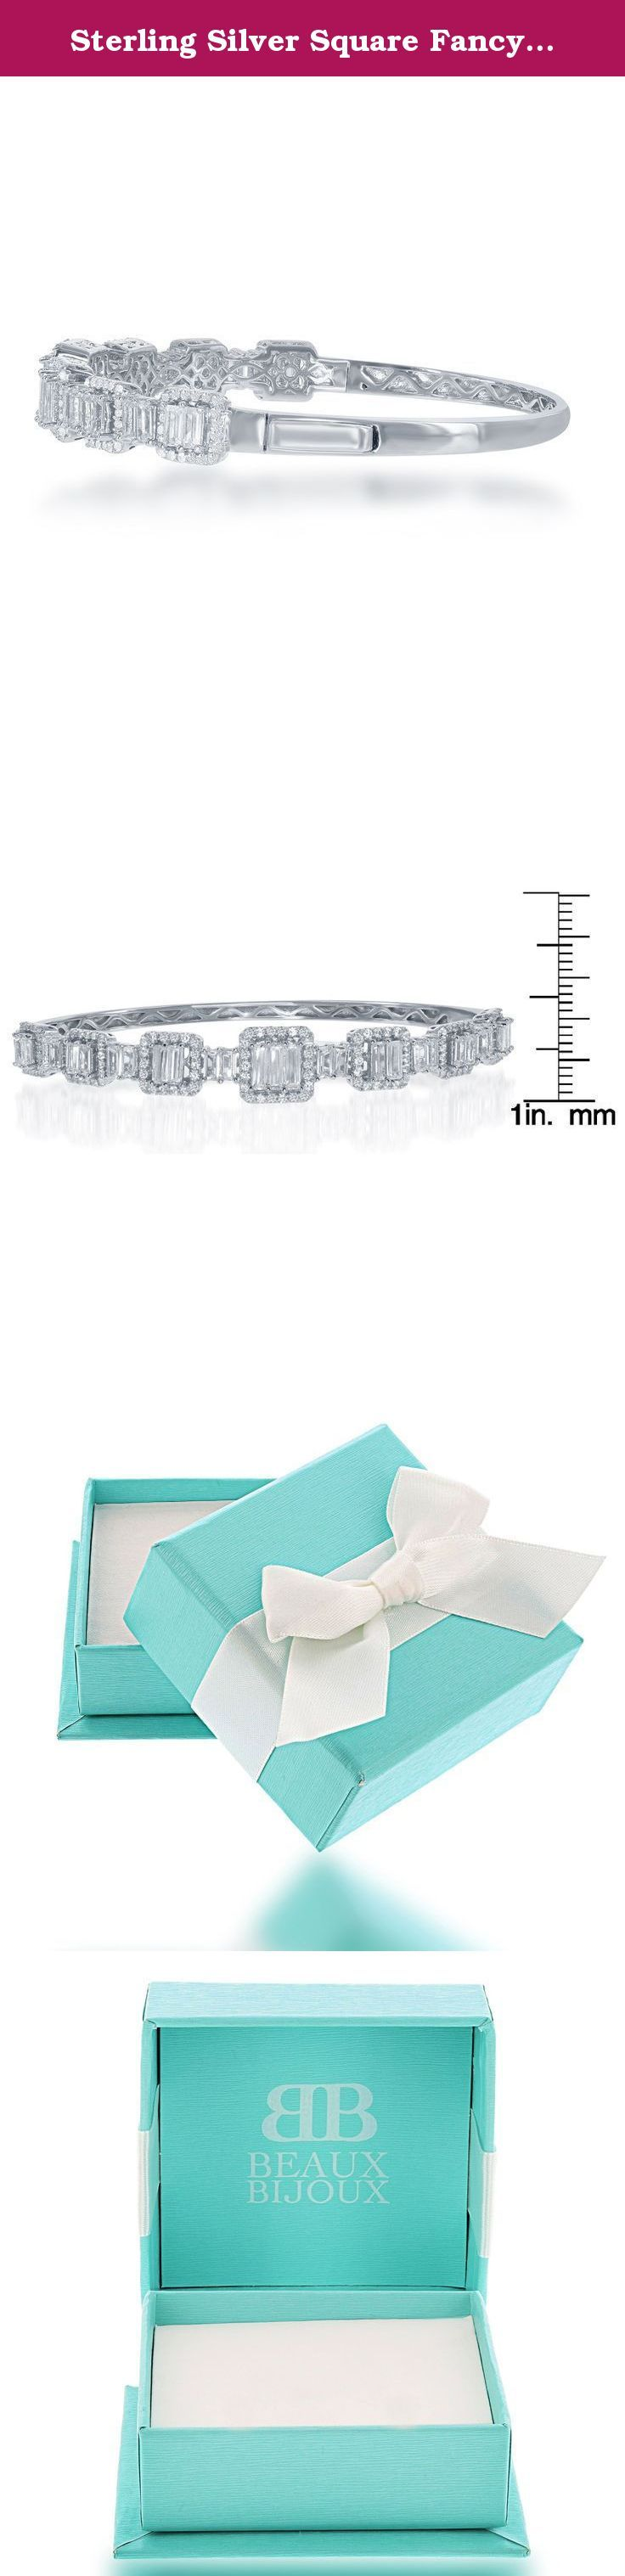 Sterling Silver Square Fancy CZ Hinged Bangle. A chic and trendy bracelet.